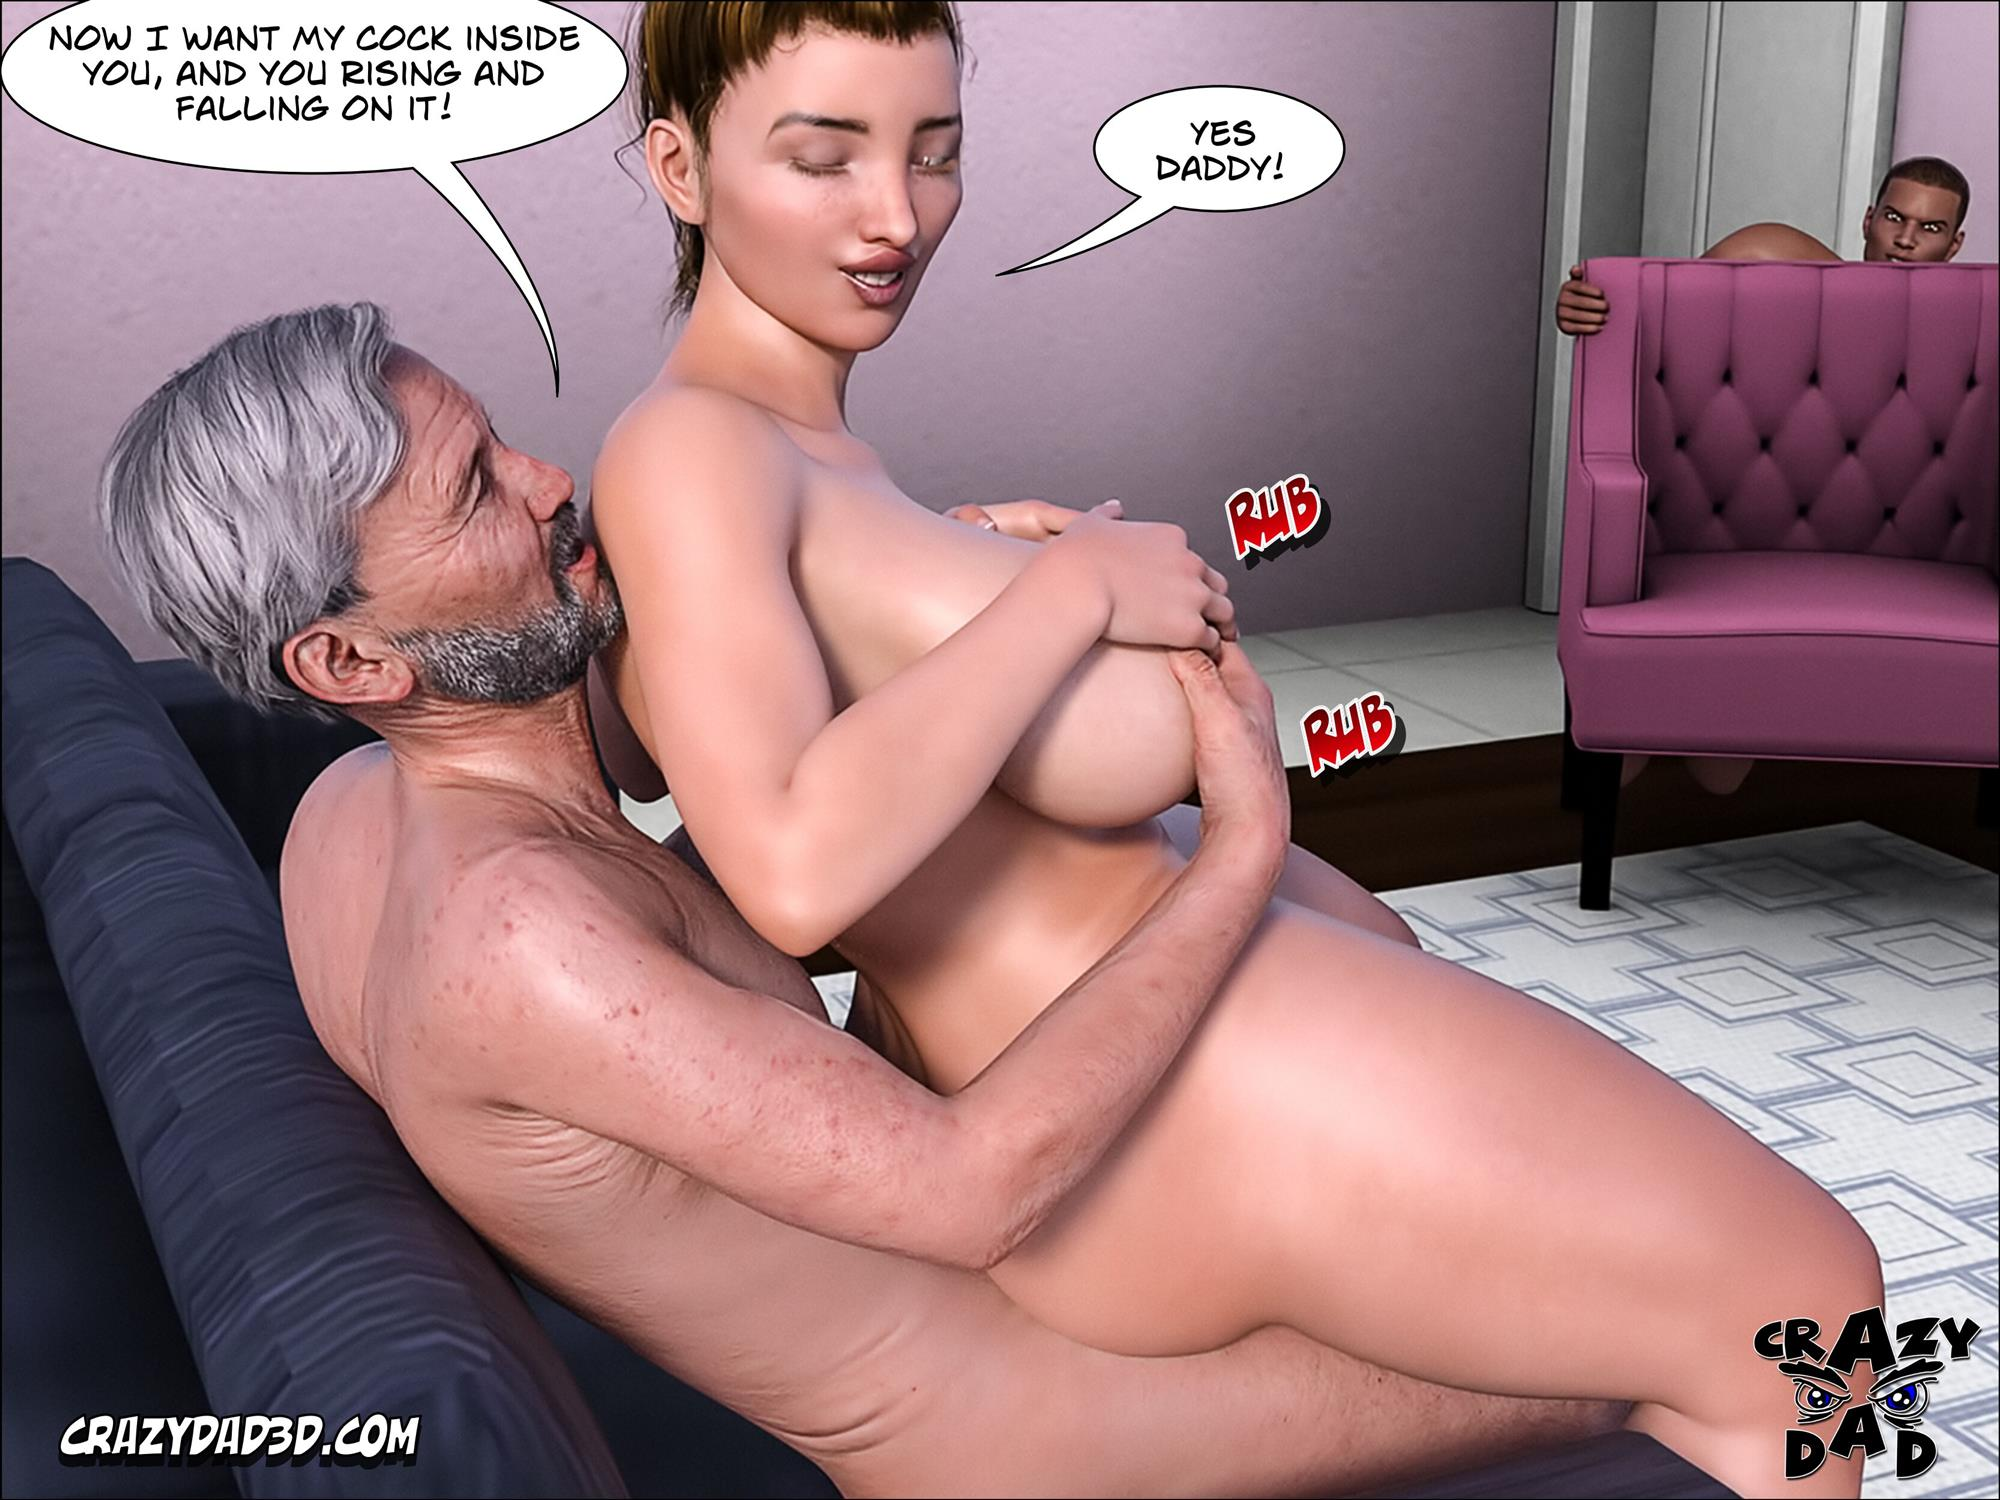 Father-in-Law at Home 10 [Crazy Dad 3D] - Foto 36